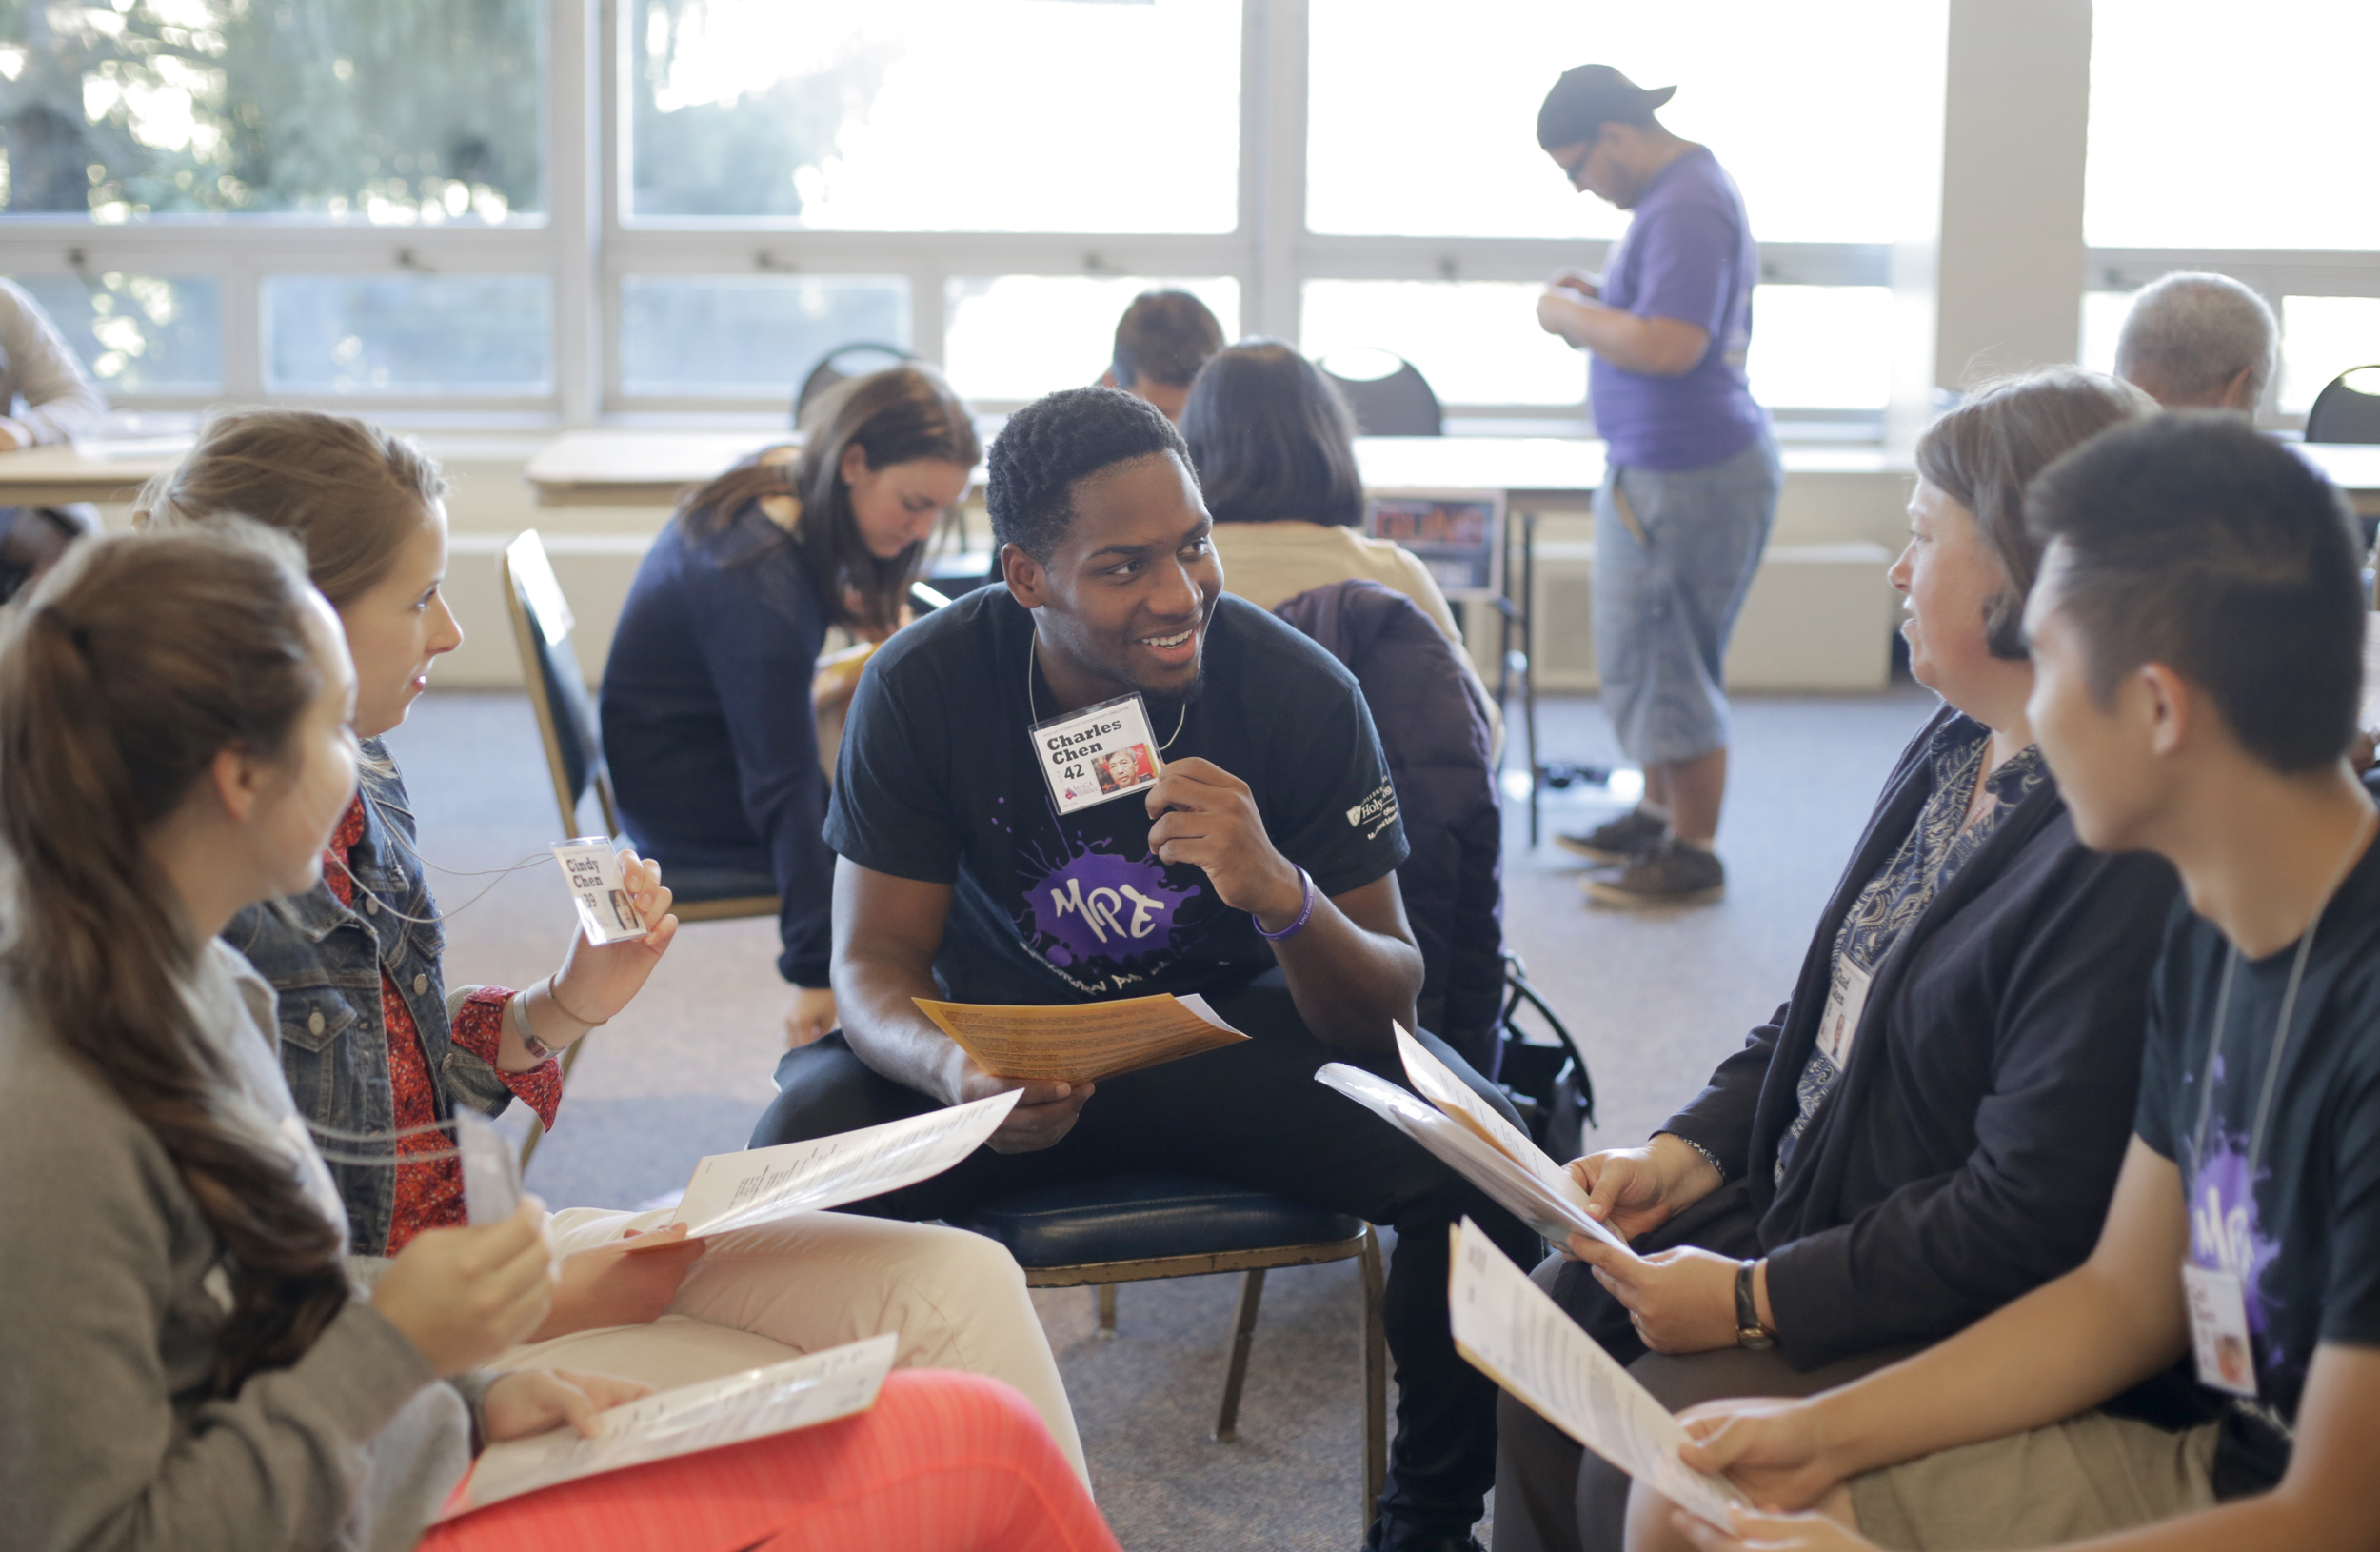 Holy Cross Students experience a poverty simulation on campus (Photo by College of the Holy Cross)